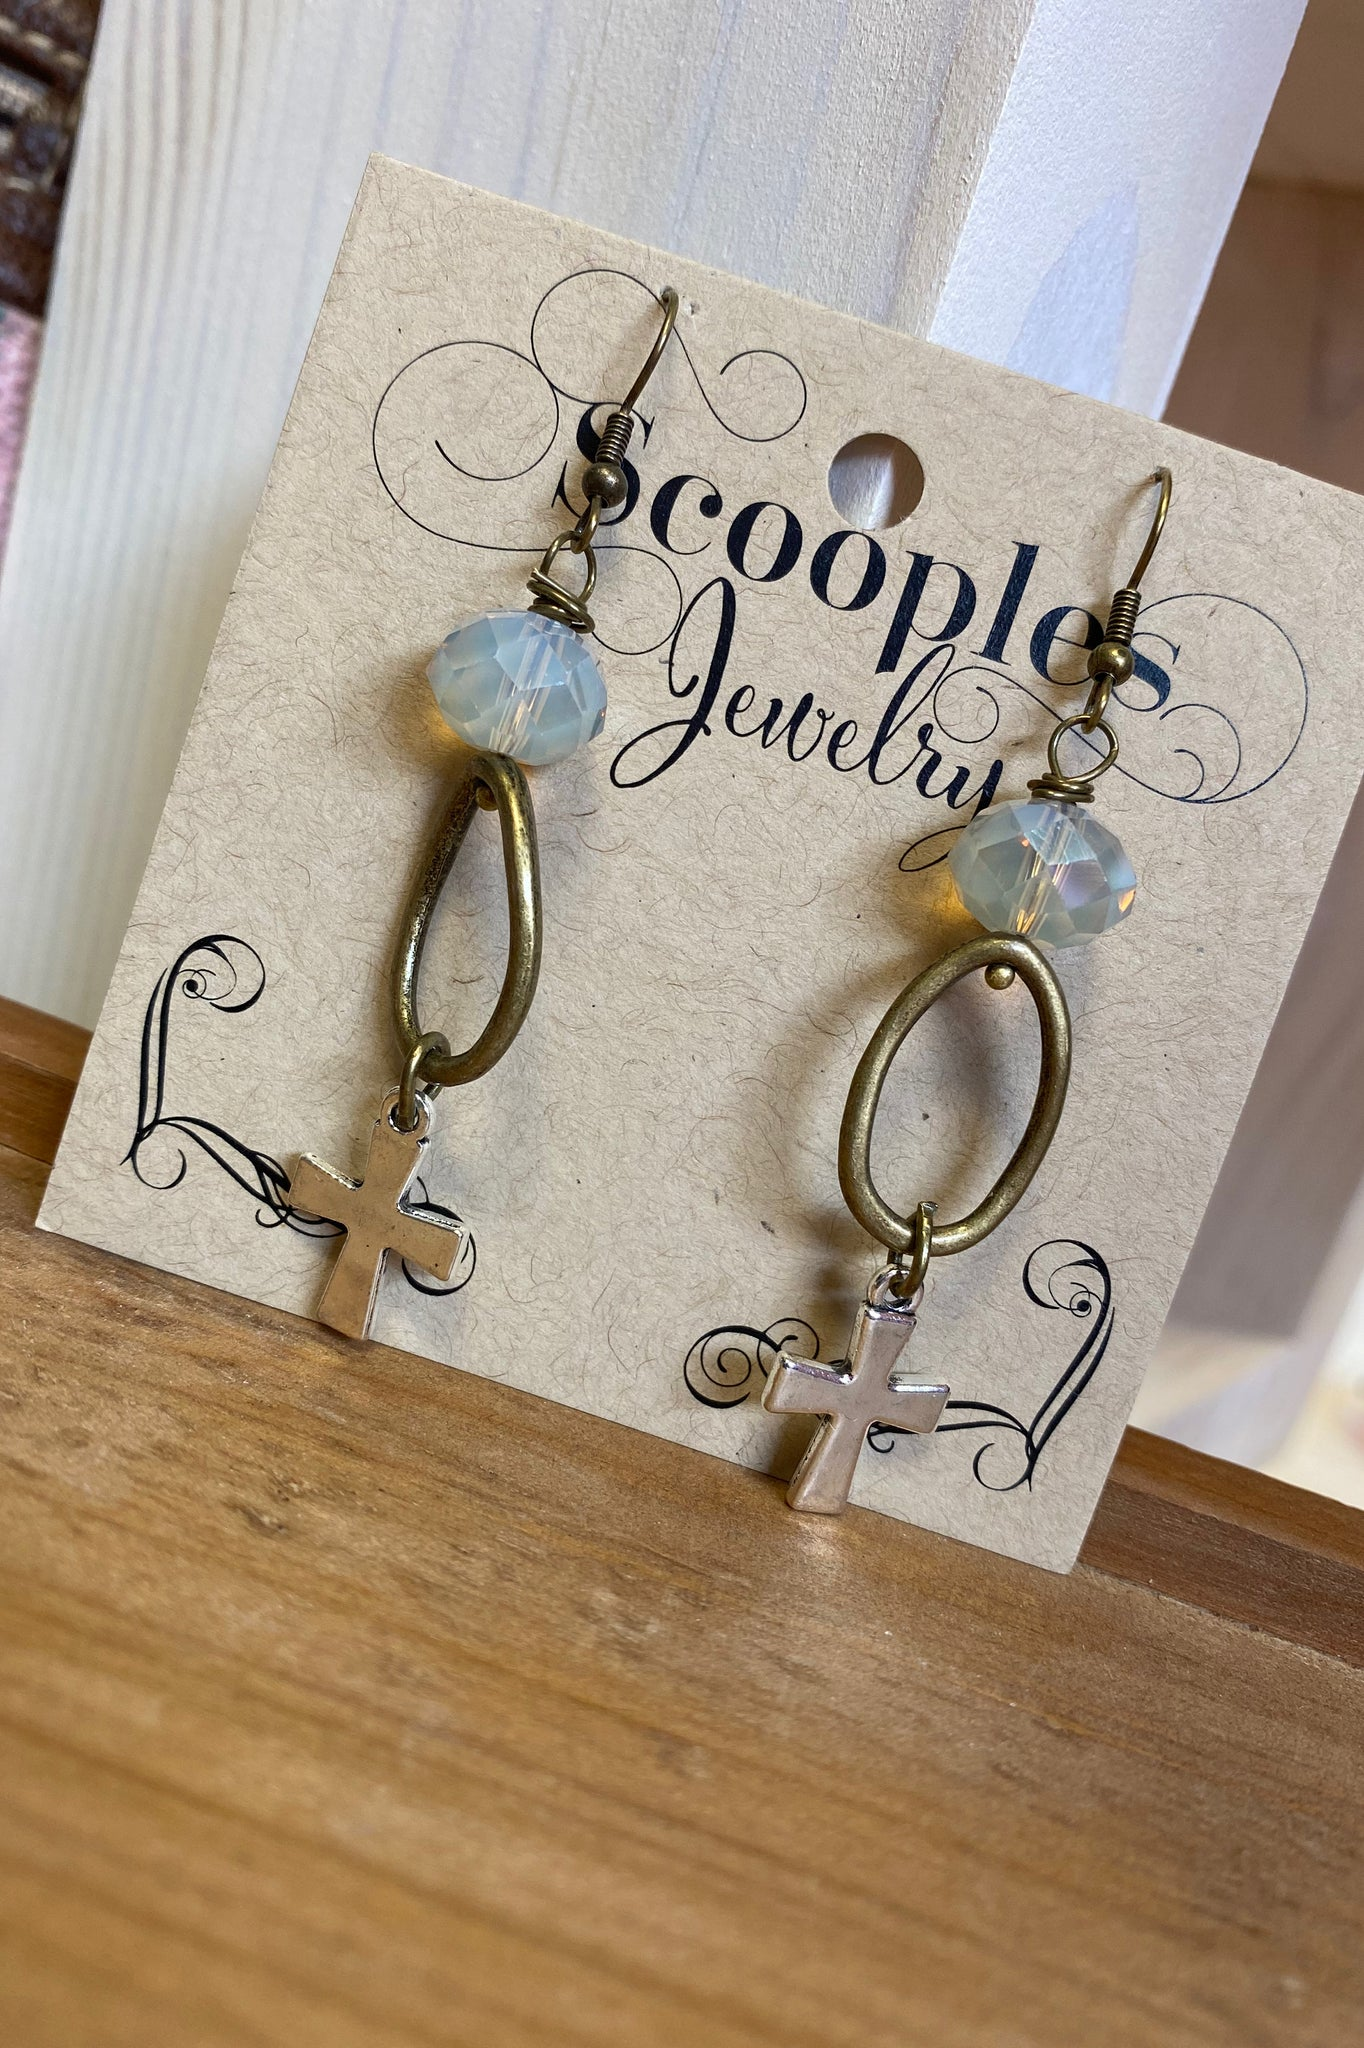 Scooples White Smoke Cross Earrings